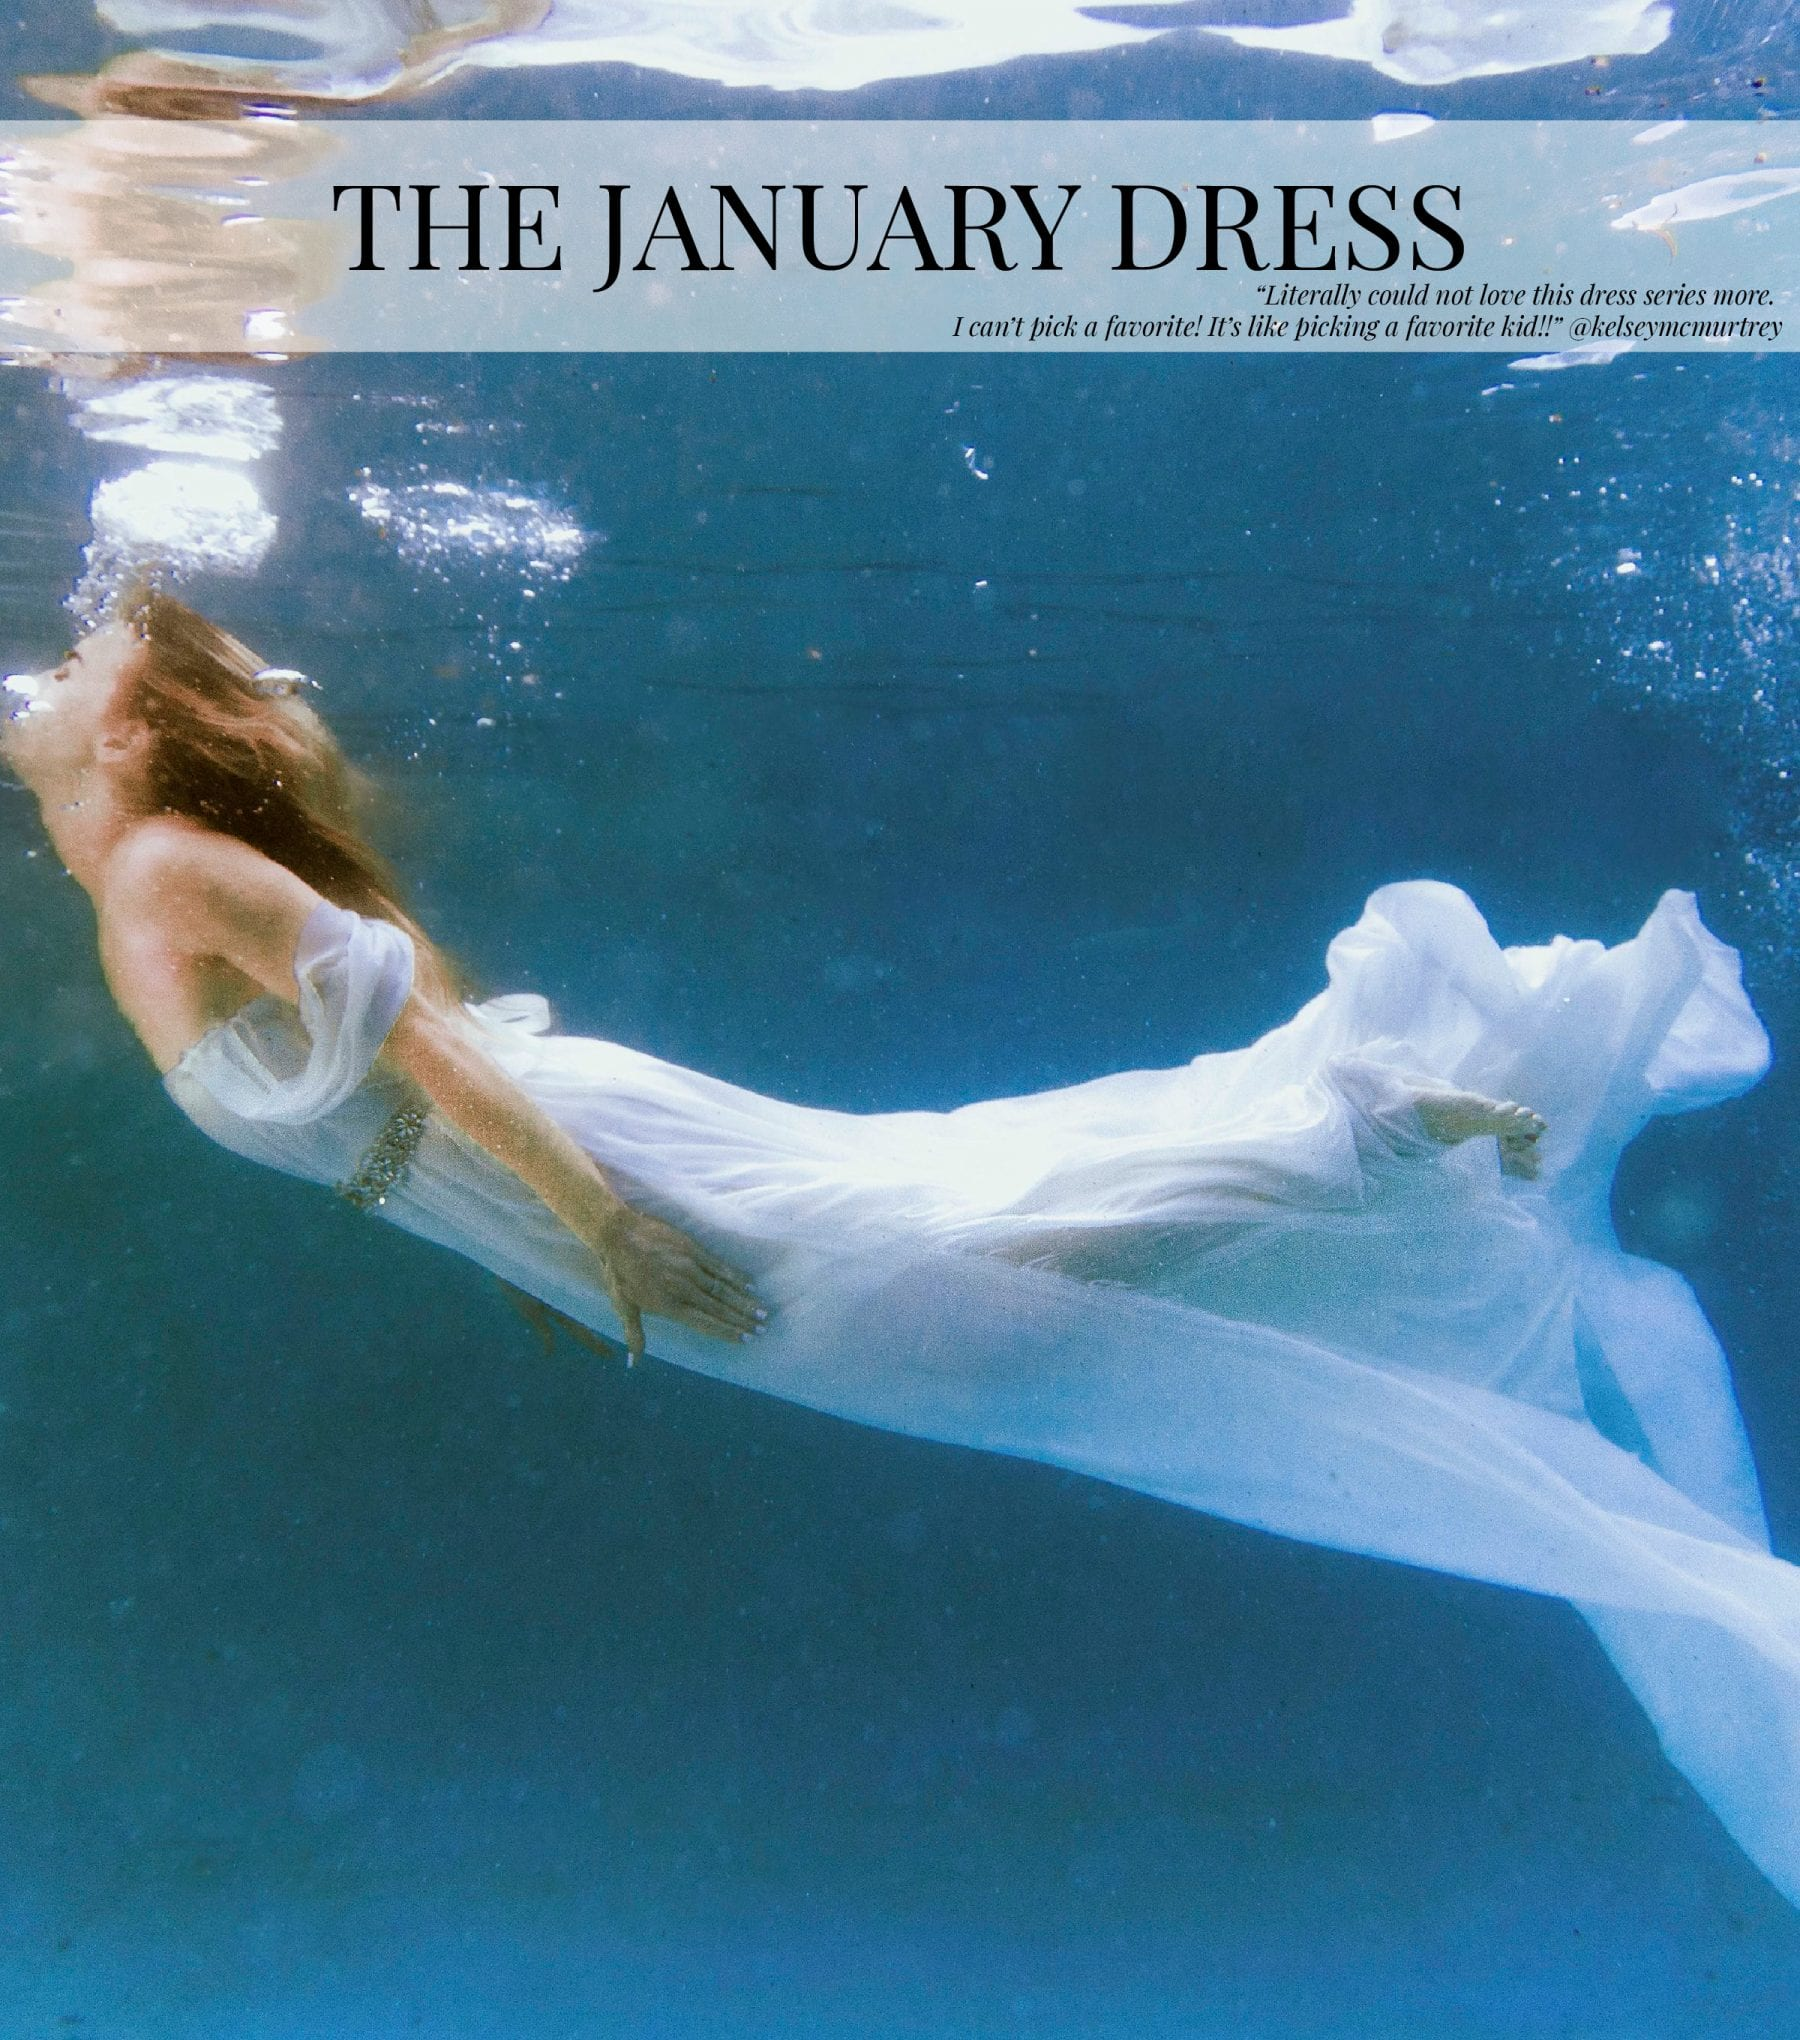 The January Dress_The Monthly Dress Series-01